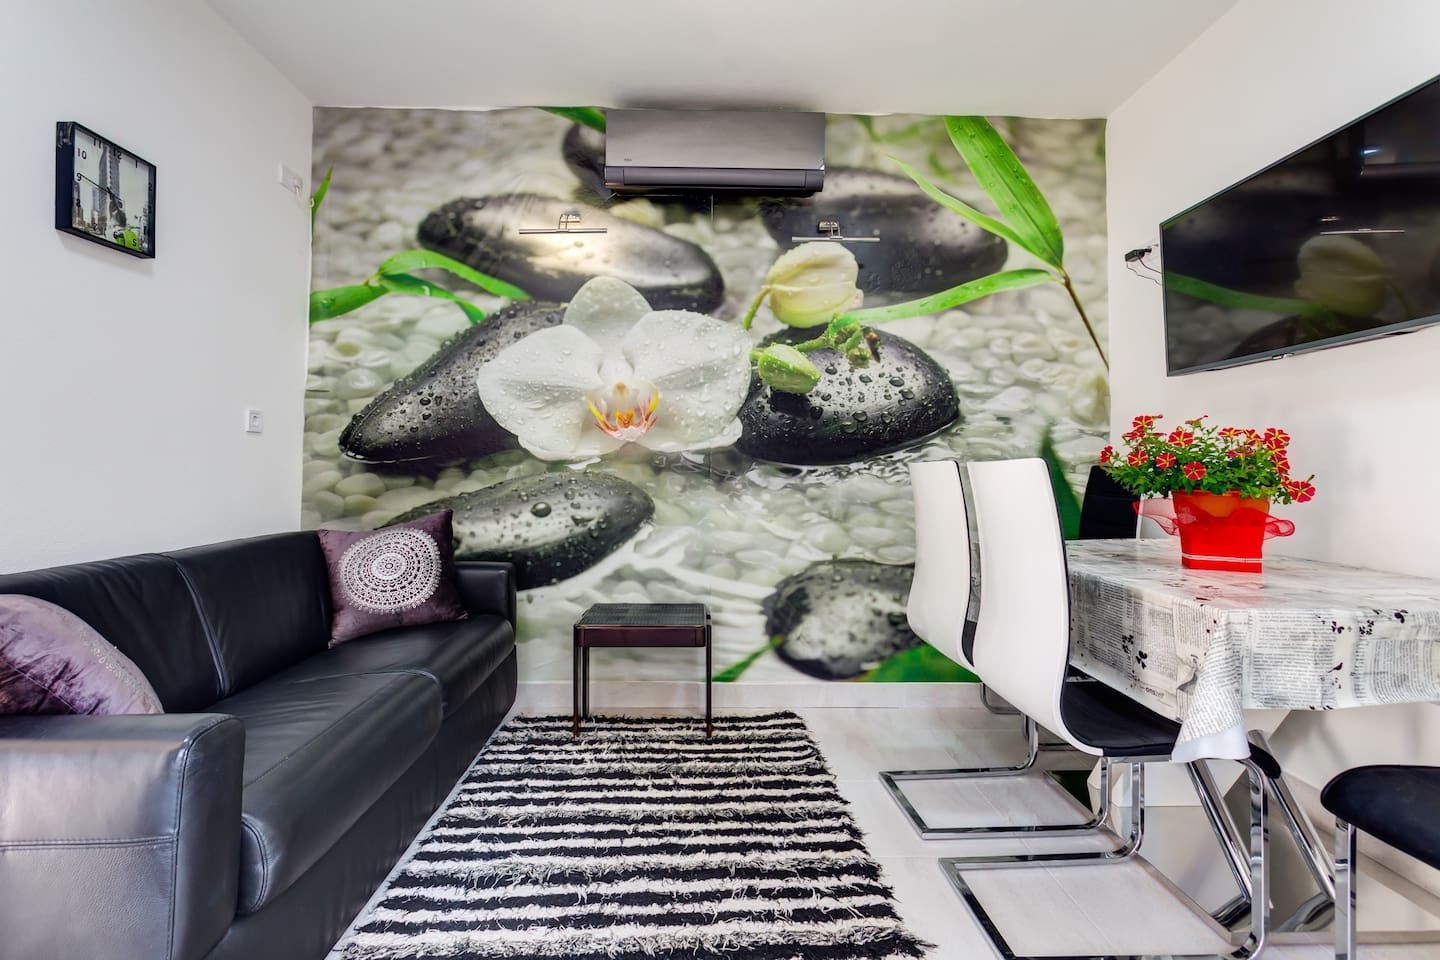 One bedroom apartment in modern style is nice and relaxing place to spend your holiday. Just a few minutes away from the beach, this refreshing space is an ideal summer oasis.